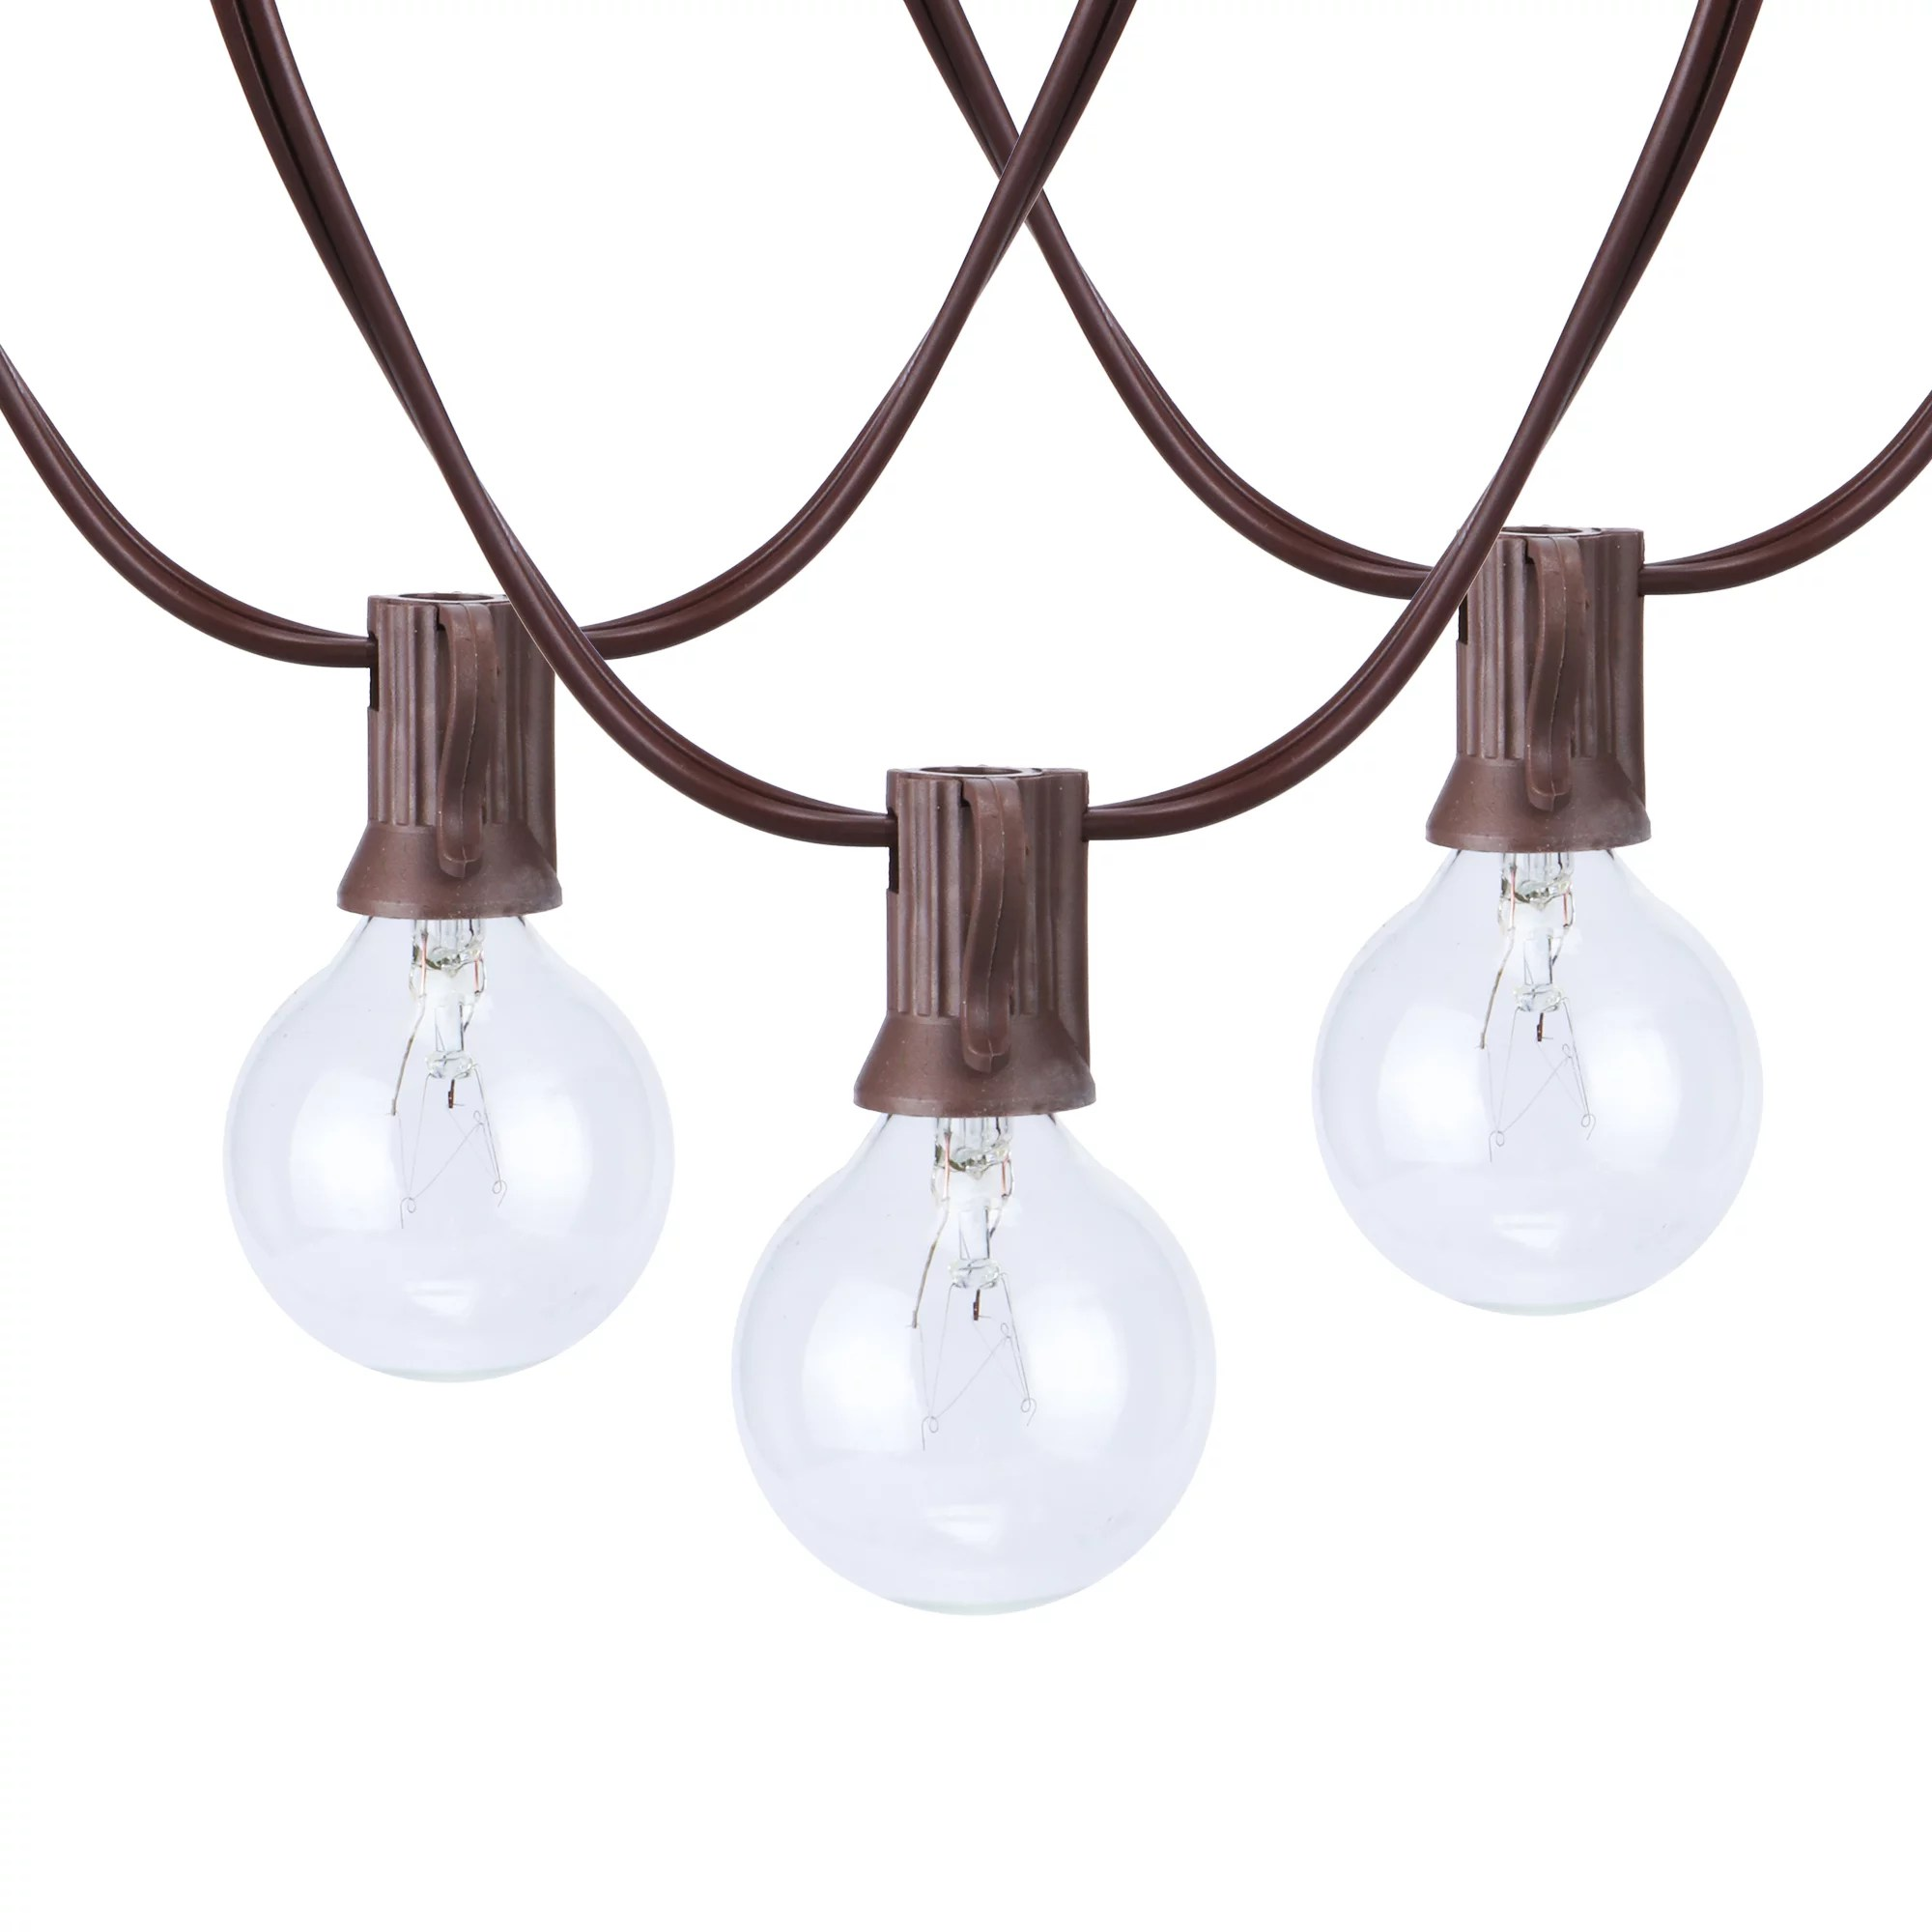 better homes gardens 110 volts electric 18 7 feet 20 count g40 clear glass globe bulbs brown wire string lights for outdoor and indoor use